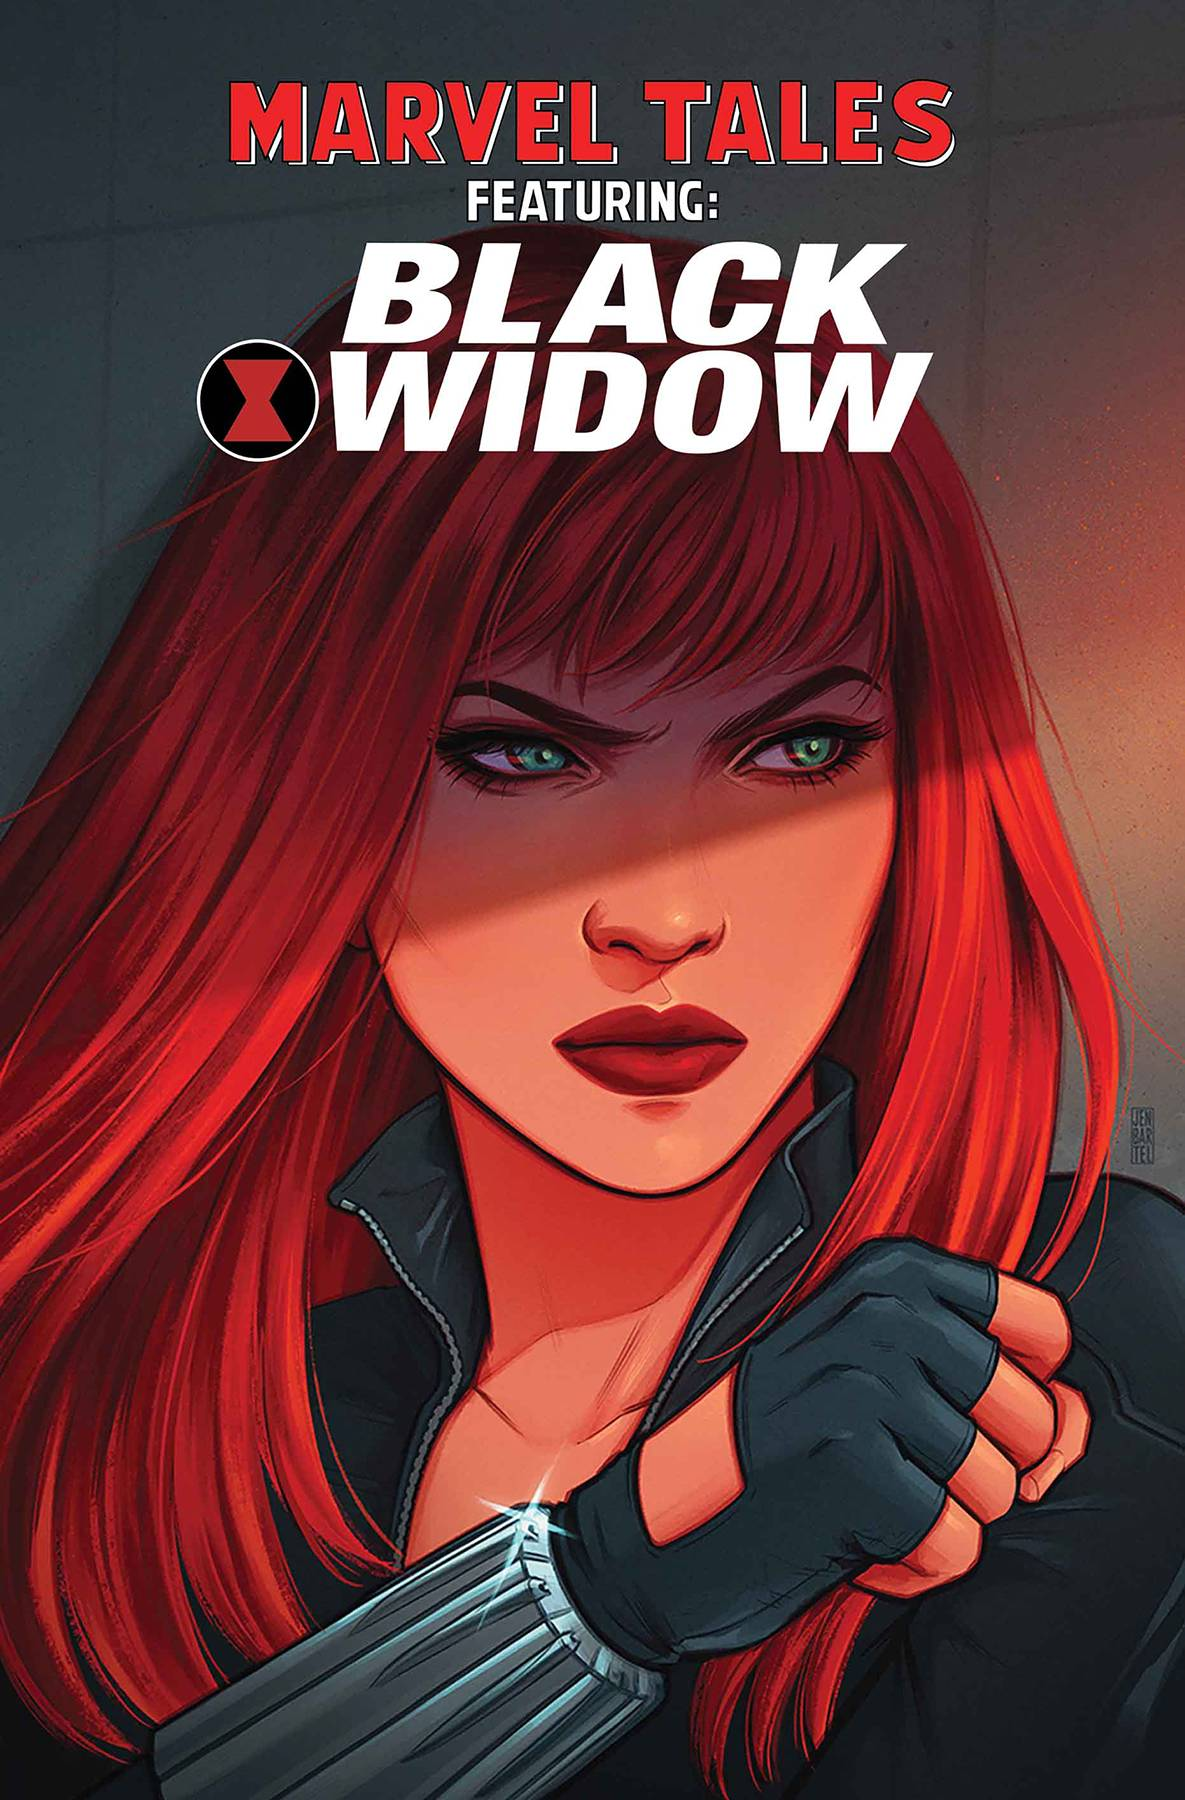 MARVEL TALES BLACK WIDOW #1